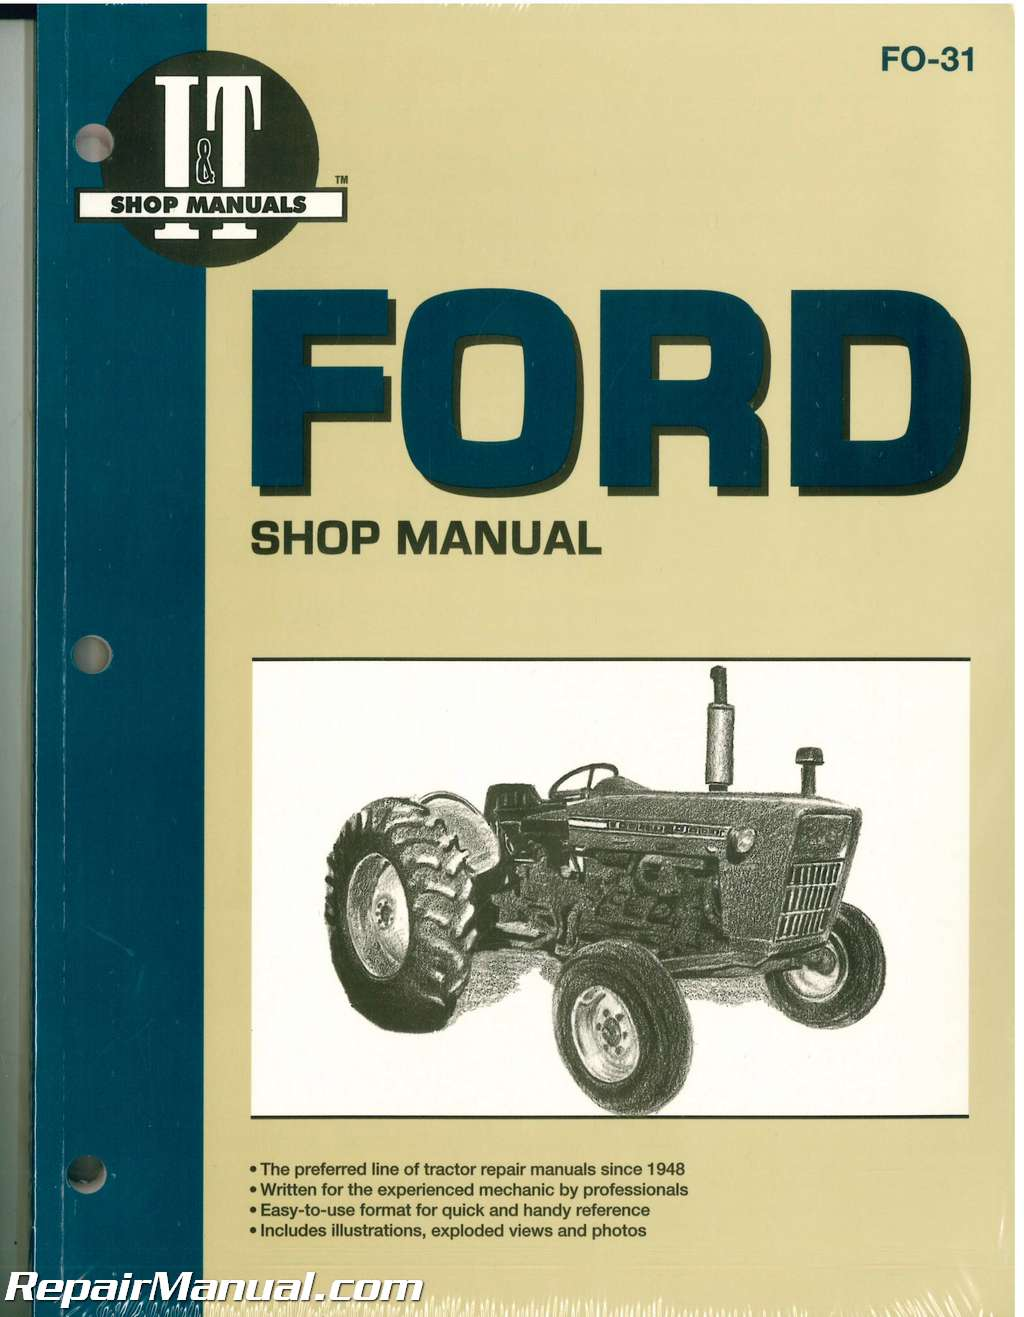 Cylinder Ford Wiring Diagram on ford 5900 wiring diagram, ford 7610 wiring diagram, ford 7600 wiring diagram, ford 4610 wiring diagram, ford 2000 tractor parts diagram, ford 7740 wiring diagram, ford 7810 wiring diagram, ford 4600 wiring diagram, ford 6000 wiring diagram, ford 2810 wiring diagram, ford 500 wiring diagram, ford 2310 wiring diagram, ford 7710 wiring diagram, trailers wiring diagram, ford 4000 ignition system, ford backhoe wiring diagram, ford 1710 wiring diagram, ford 4000 solenoid, ford 1700 wiring diagram, ford 8630 wiring diagram,